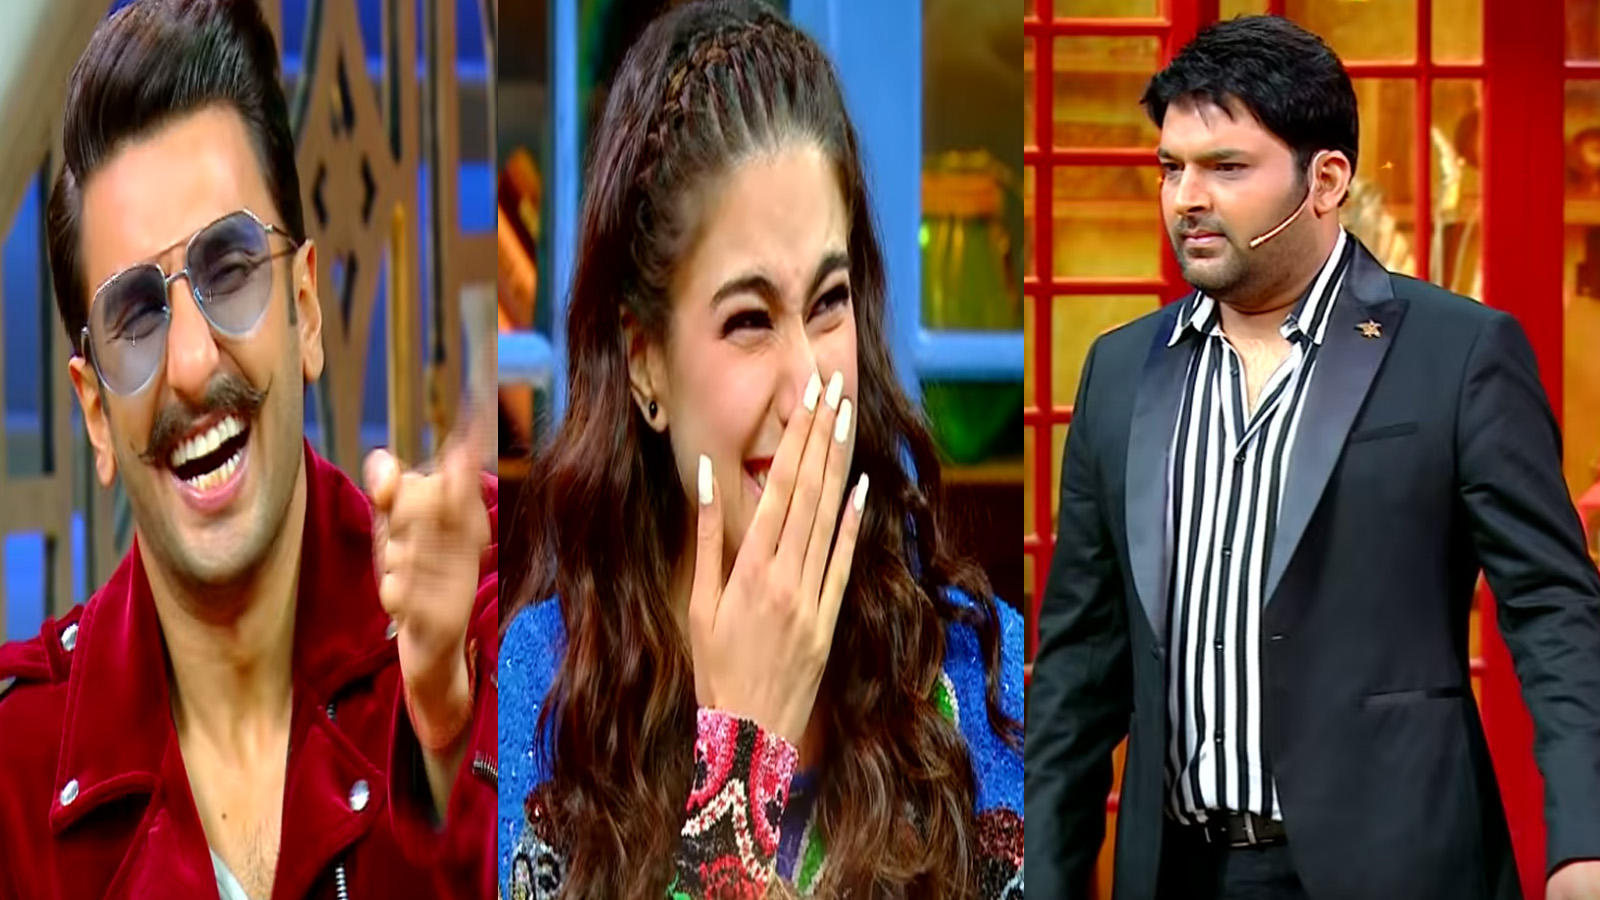 'The Kapil Sharma Show' first episode teaser: 'Simmba' stars Ranveer Singh  and Sara Ali Khan can't stop laughing